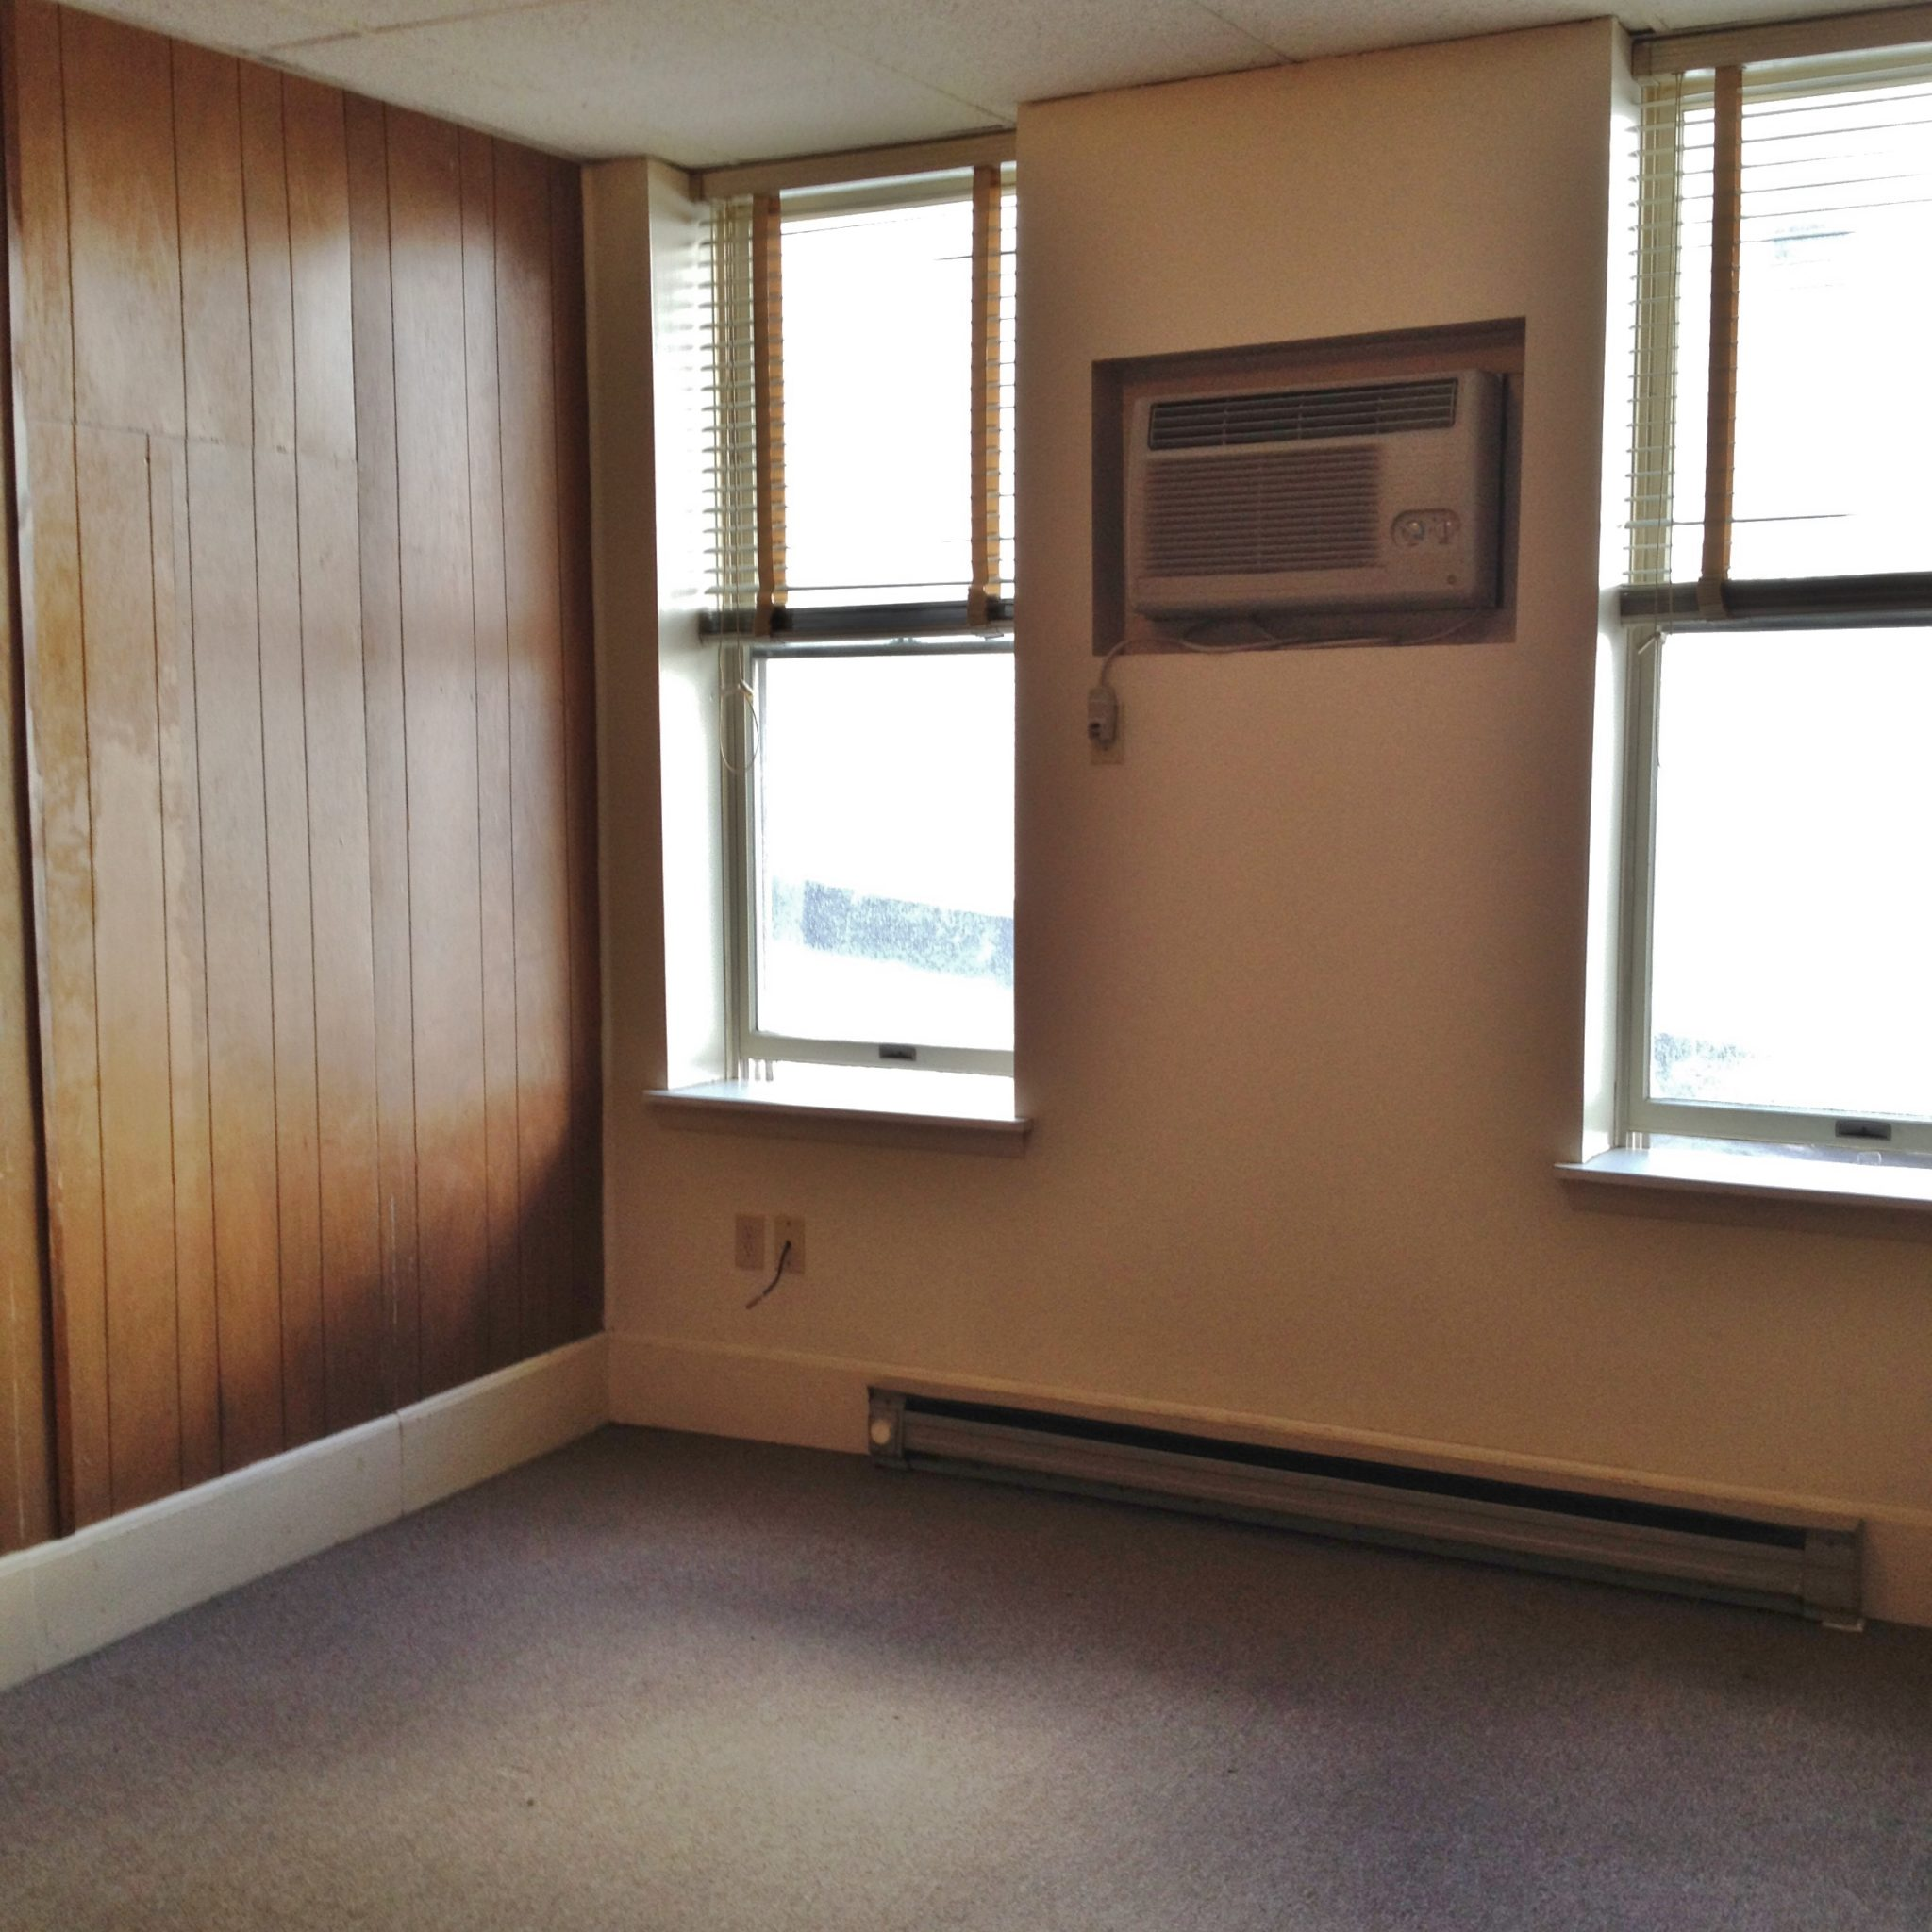 Photo of the living room in Apt. #2, 212 W. High Street.